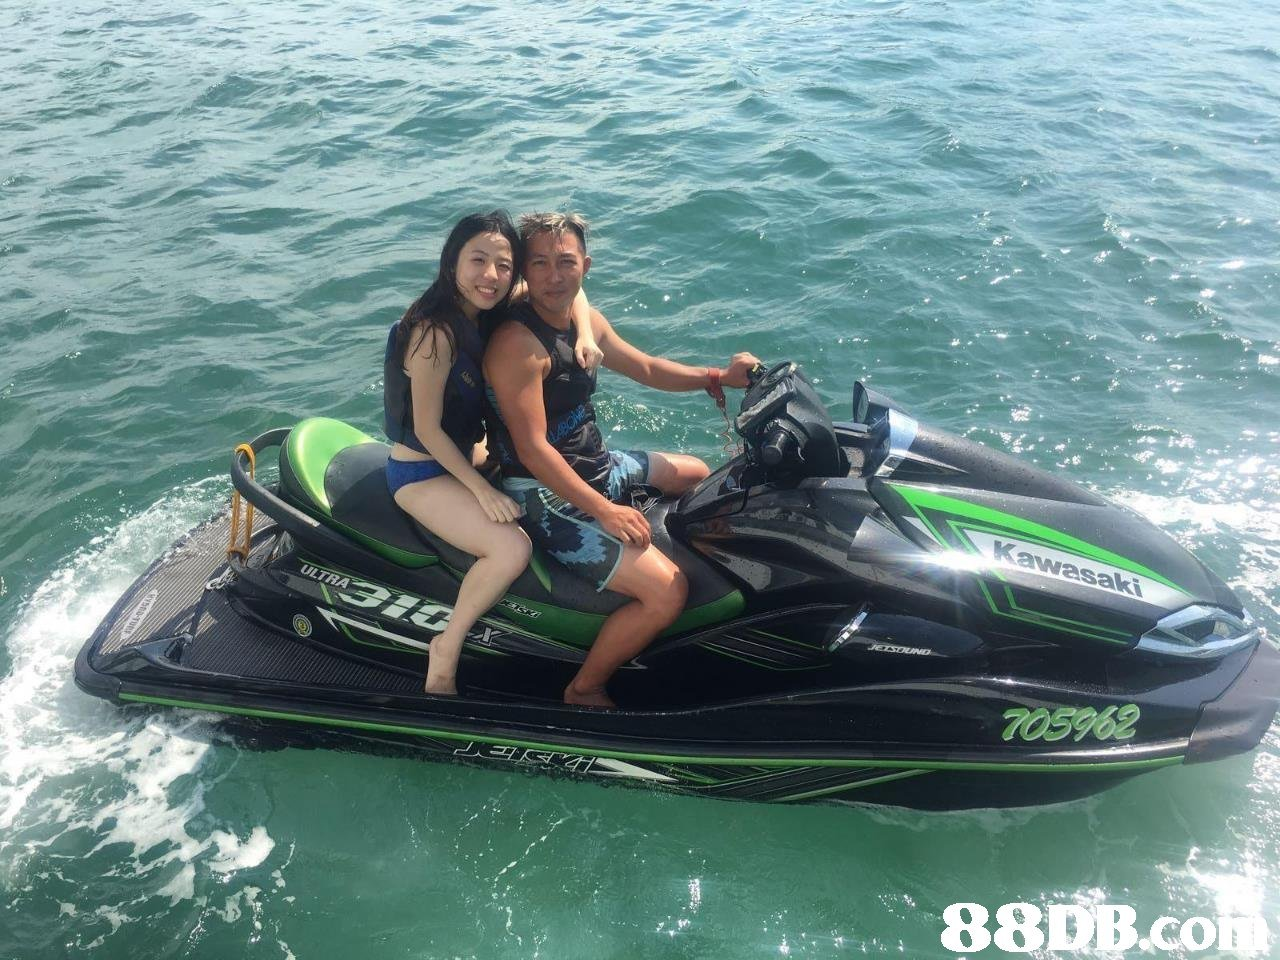 7068 883B.cO  Jet ski,Personal water craft,Vehicle,Water sport,Water transportation